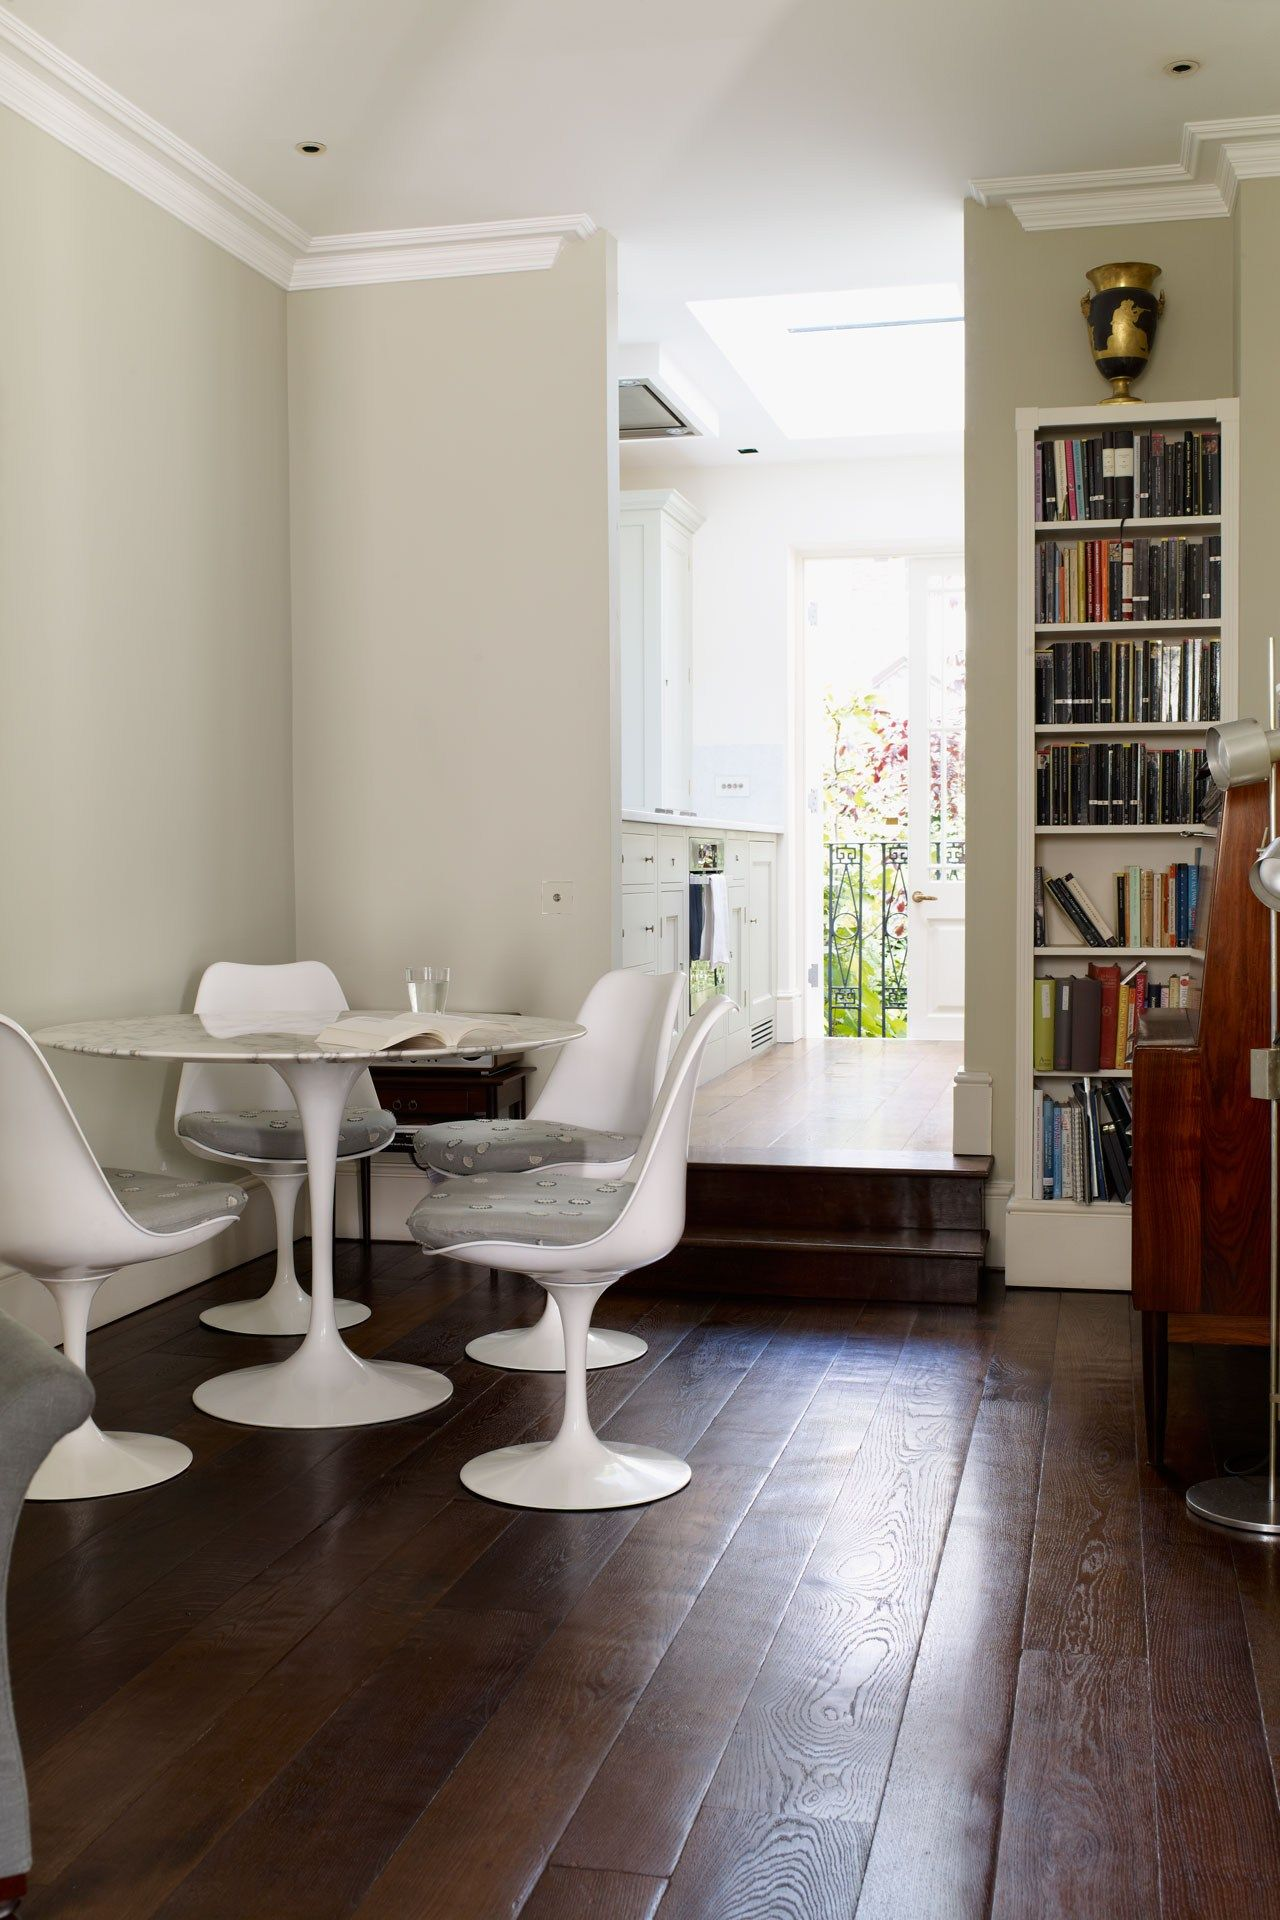 Small room ideas | Small rooms, Small spaces and Small space design